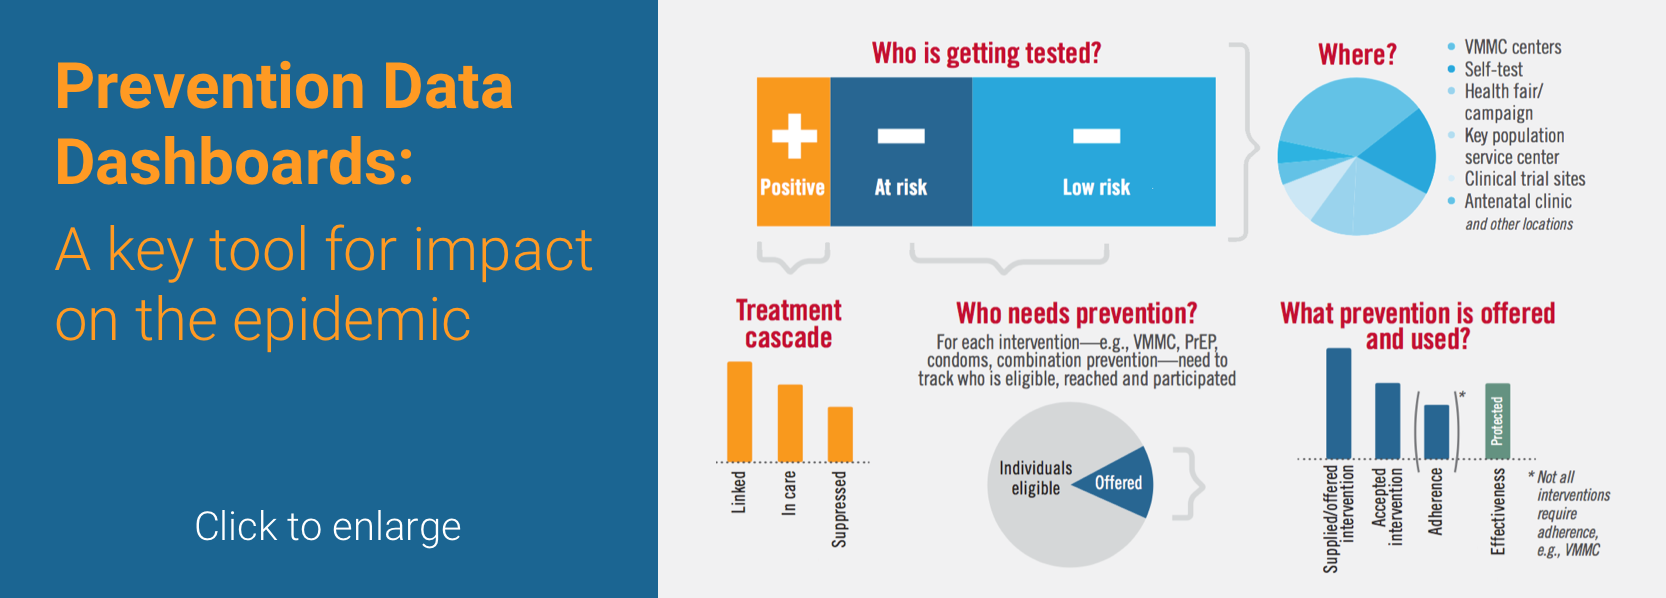 Prevention Data Dashboards: A key tool for impact on the epidemic. Click to enlarge.